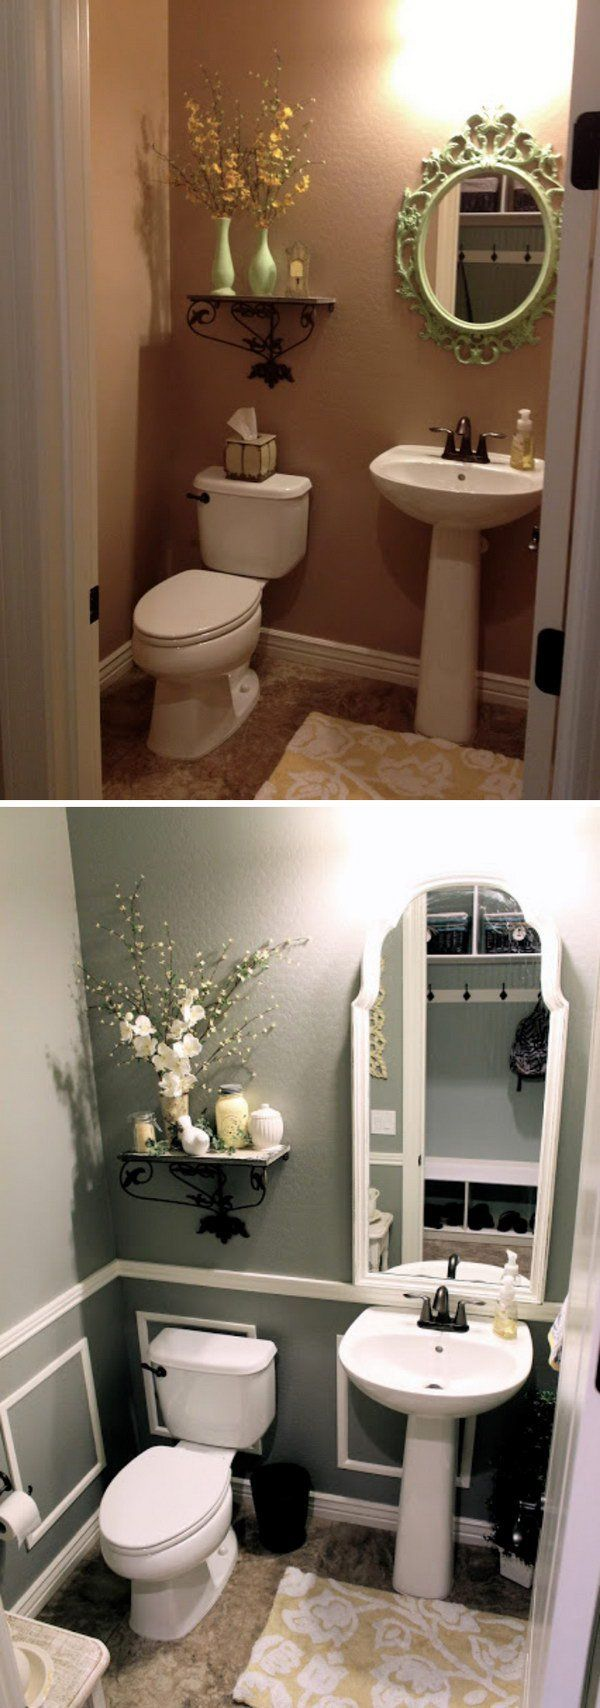 The 25 Best Small Bathroom Makeovers Ideas On Pinterest Bathroom Makeovers Tiny Bathroom